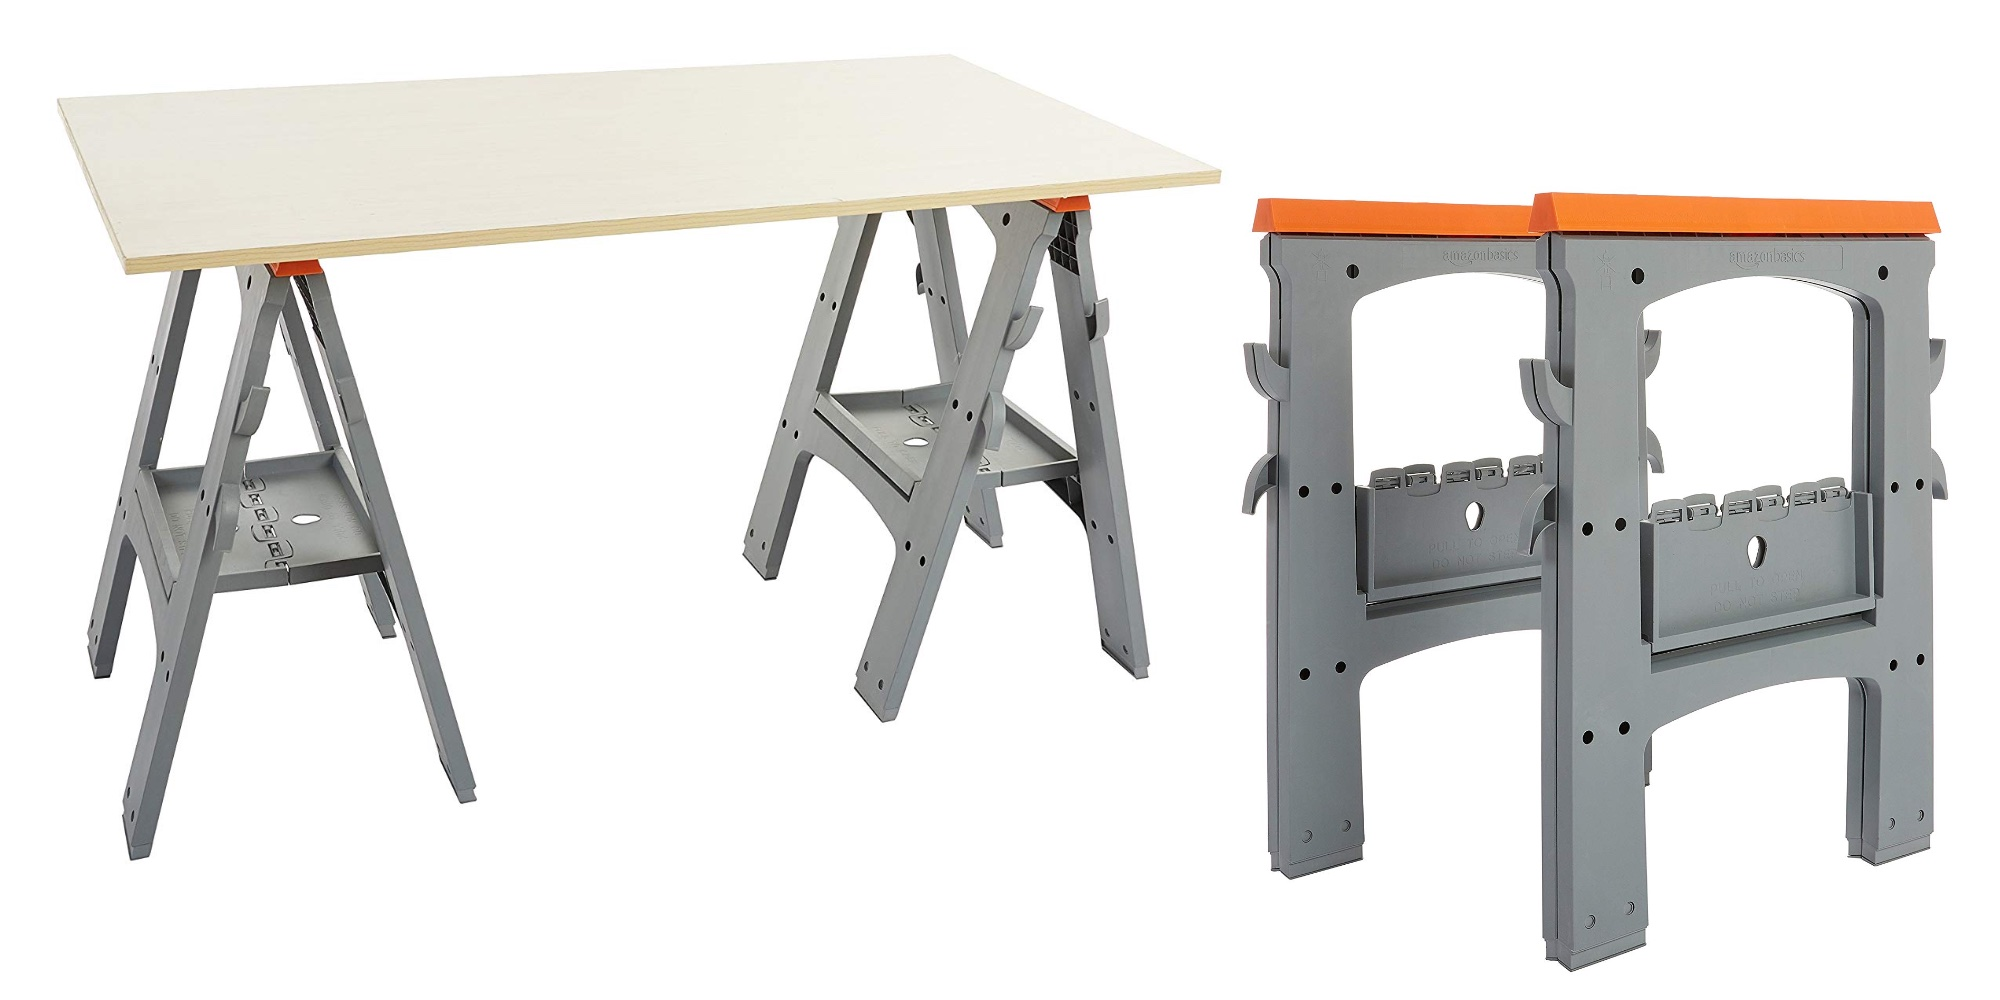 Add two of Amazon's in-house Folding Sawhorses to your kit at a new low at $25 (30% off)